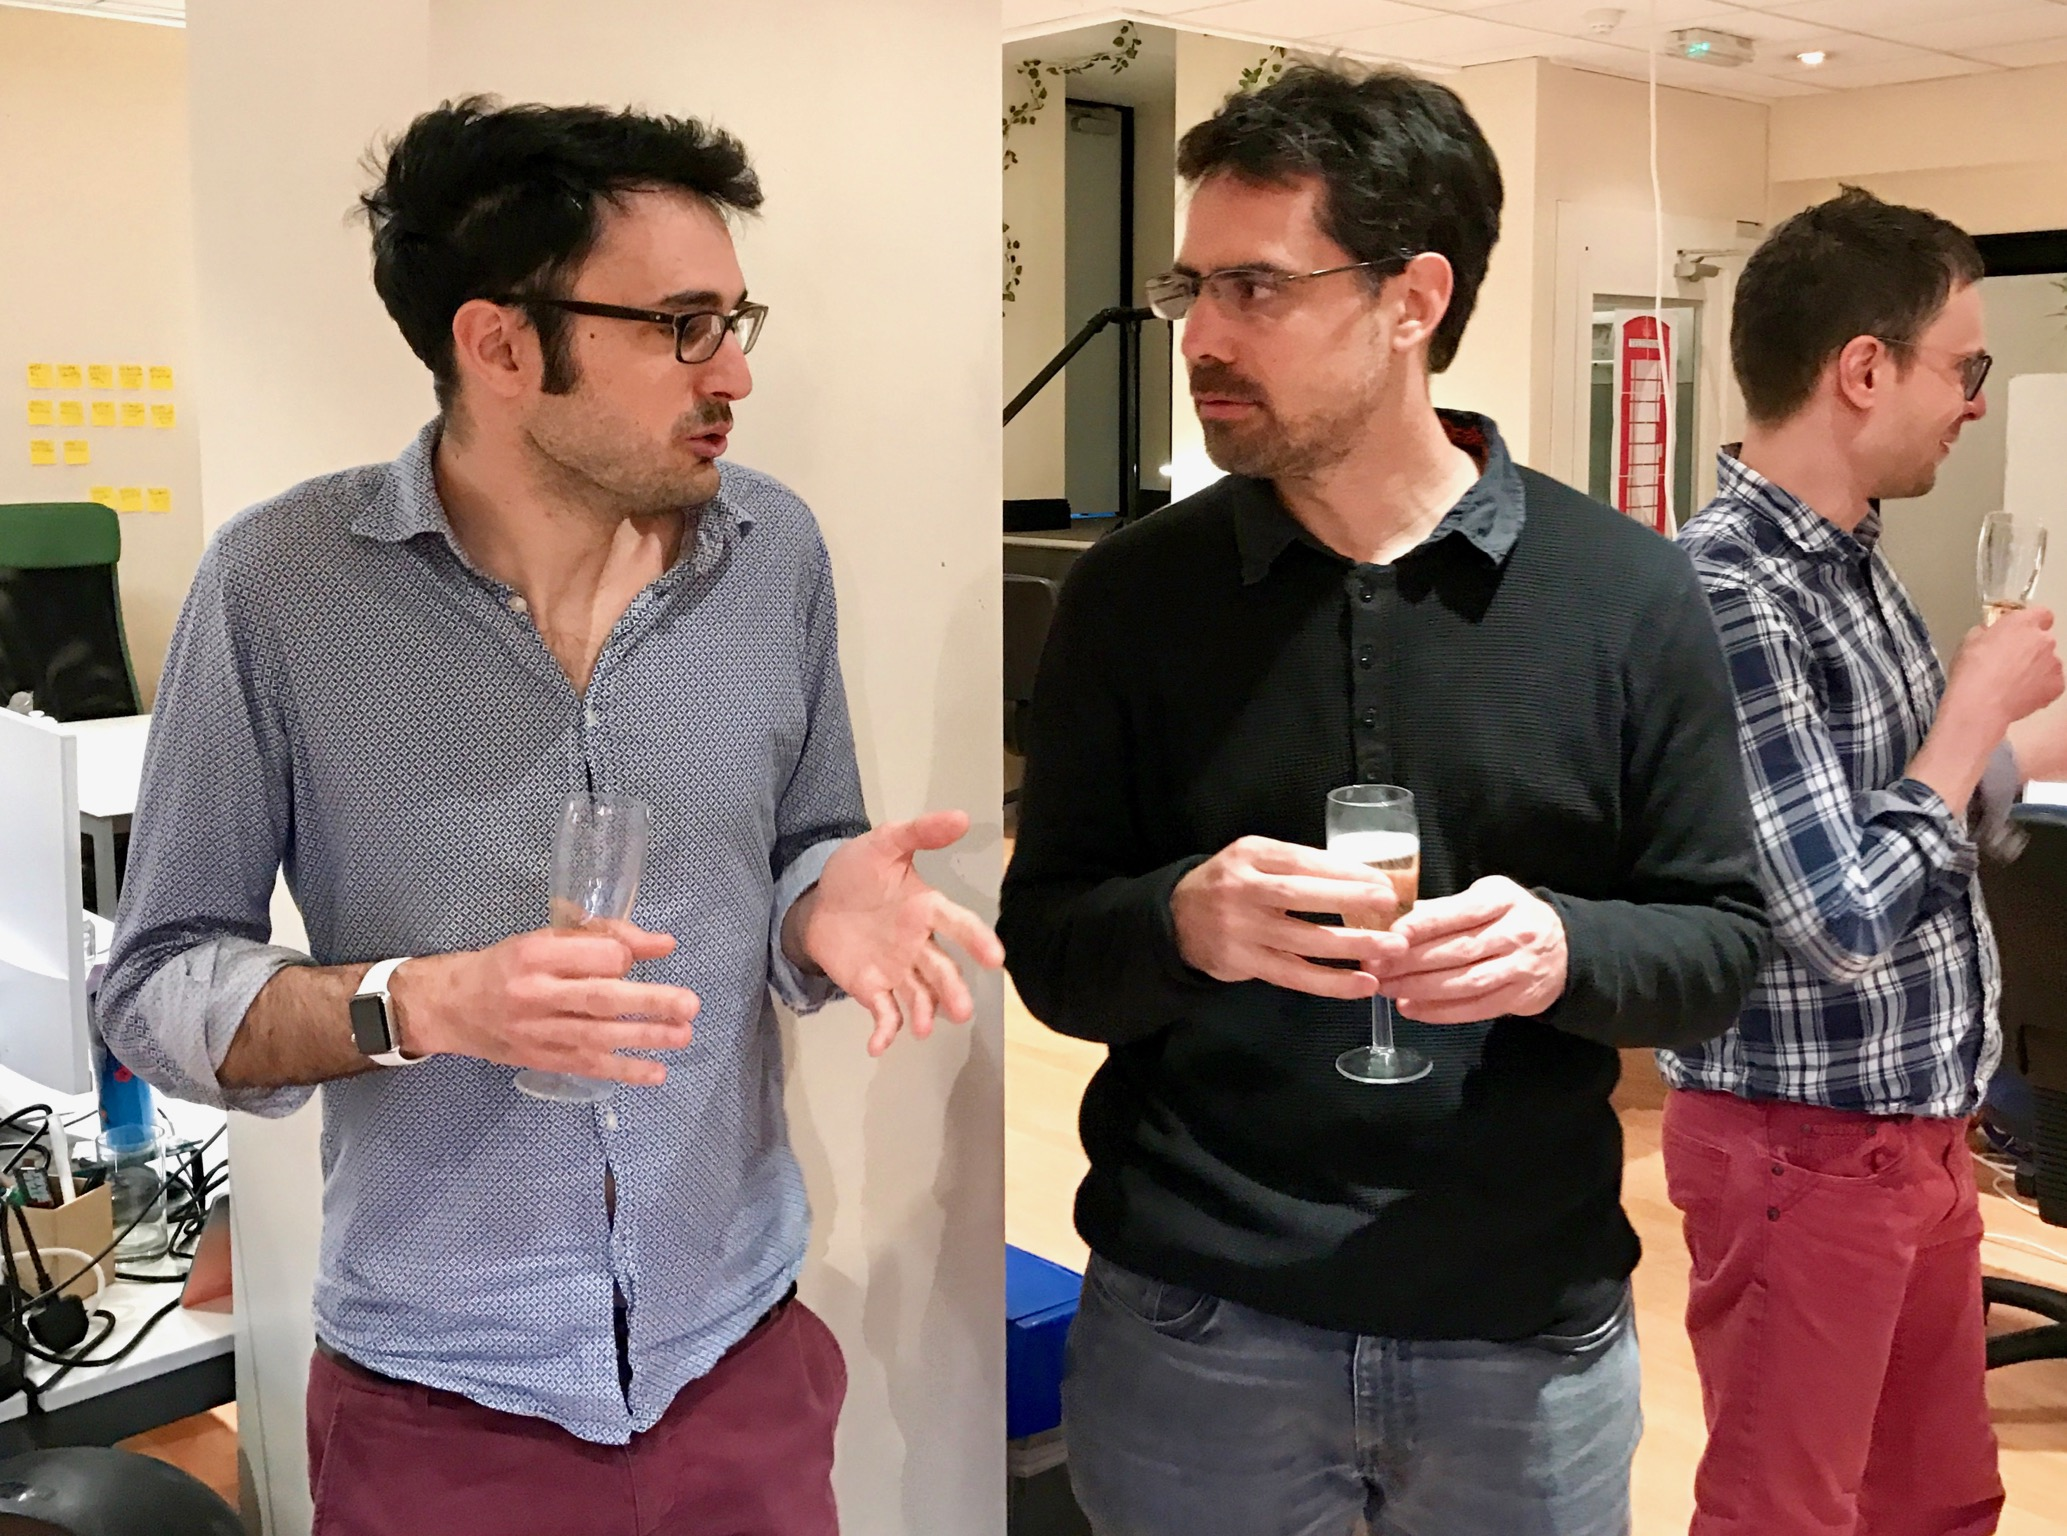 Pierre-Jean Camillieri (Aiden.ai) and Guillaume Bourchard (Bloomsbury AI) at one of our meetups, probably discussing AI...